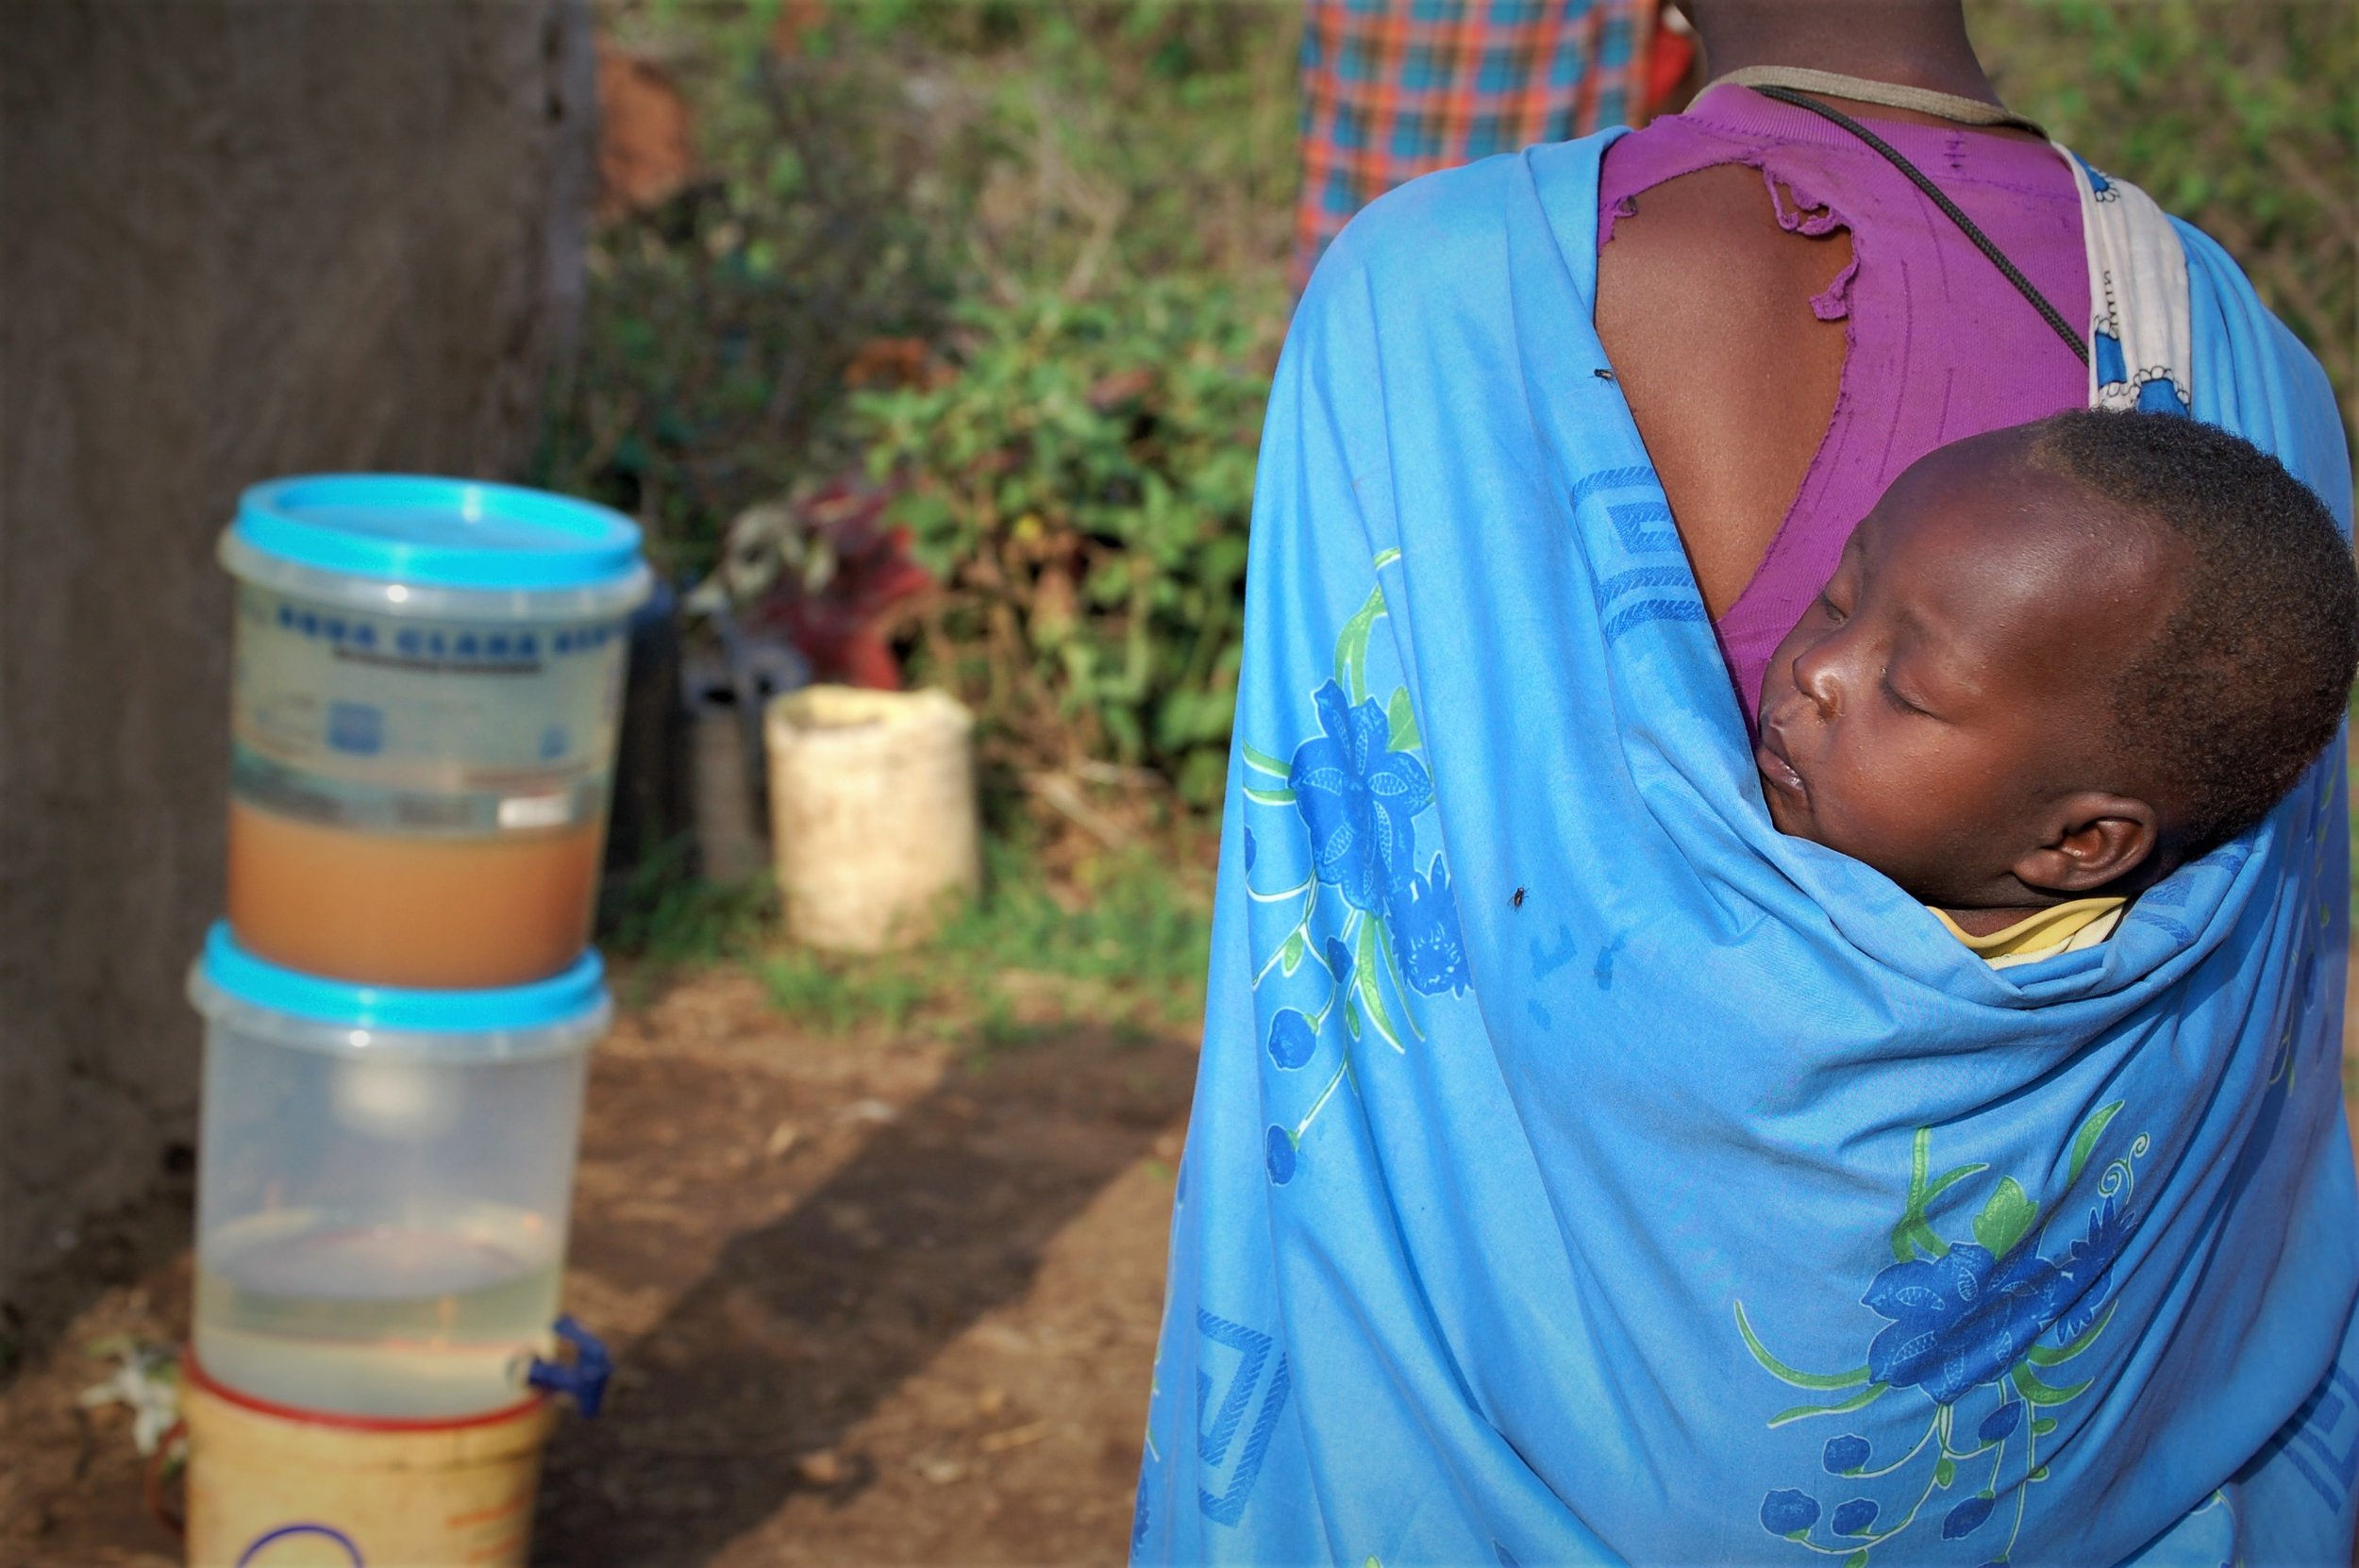 You can't talk about clean water without talking about motherhood, and I feel like this picture captures that perfectly.